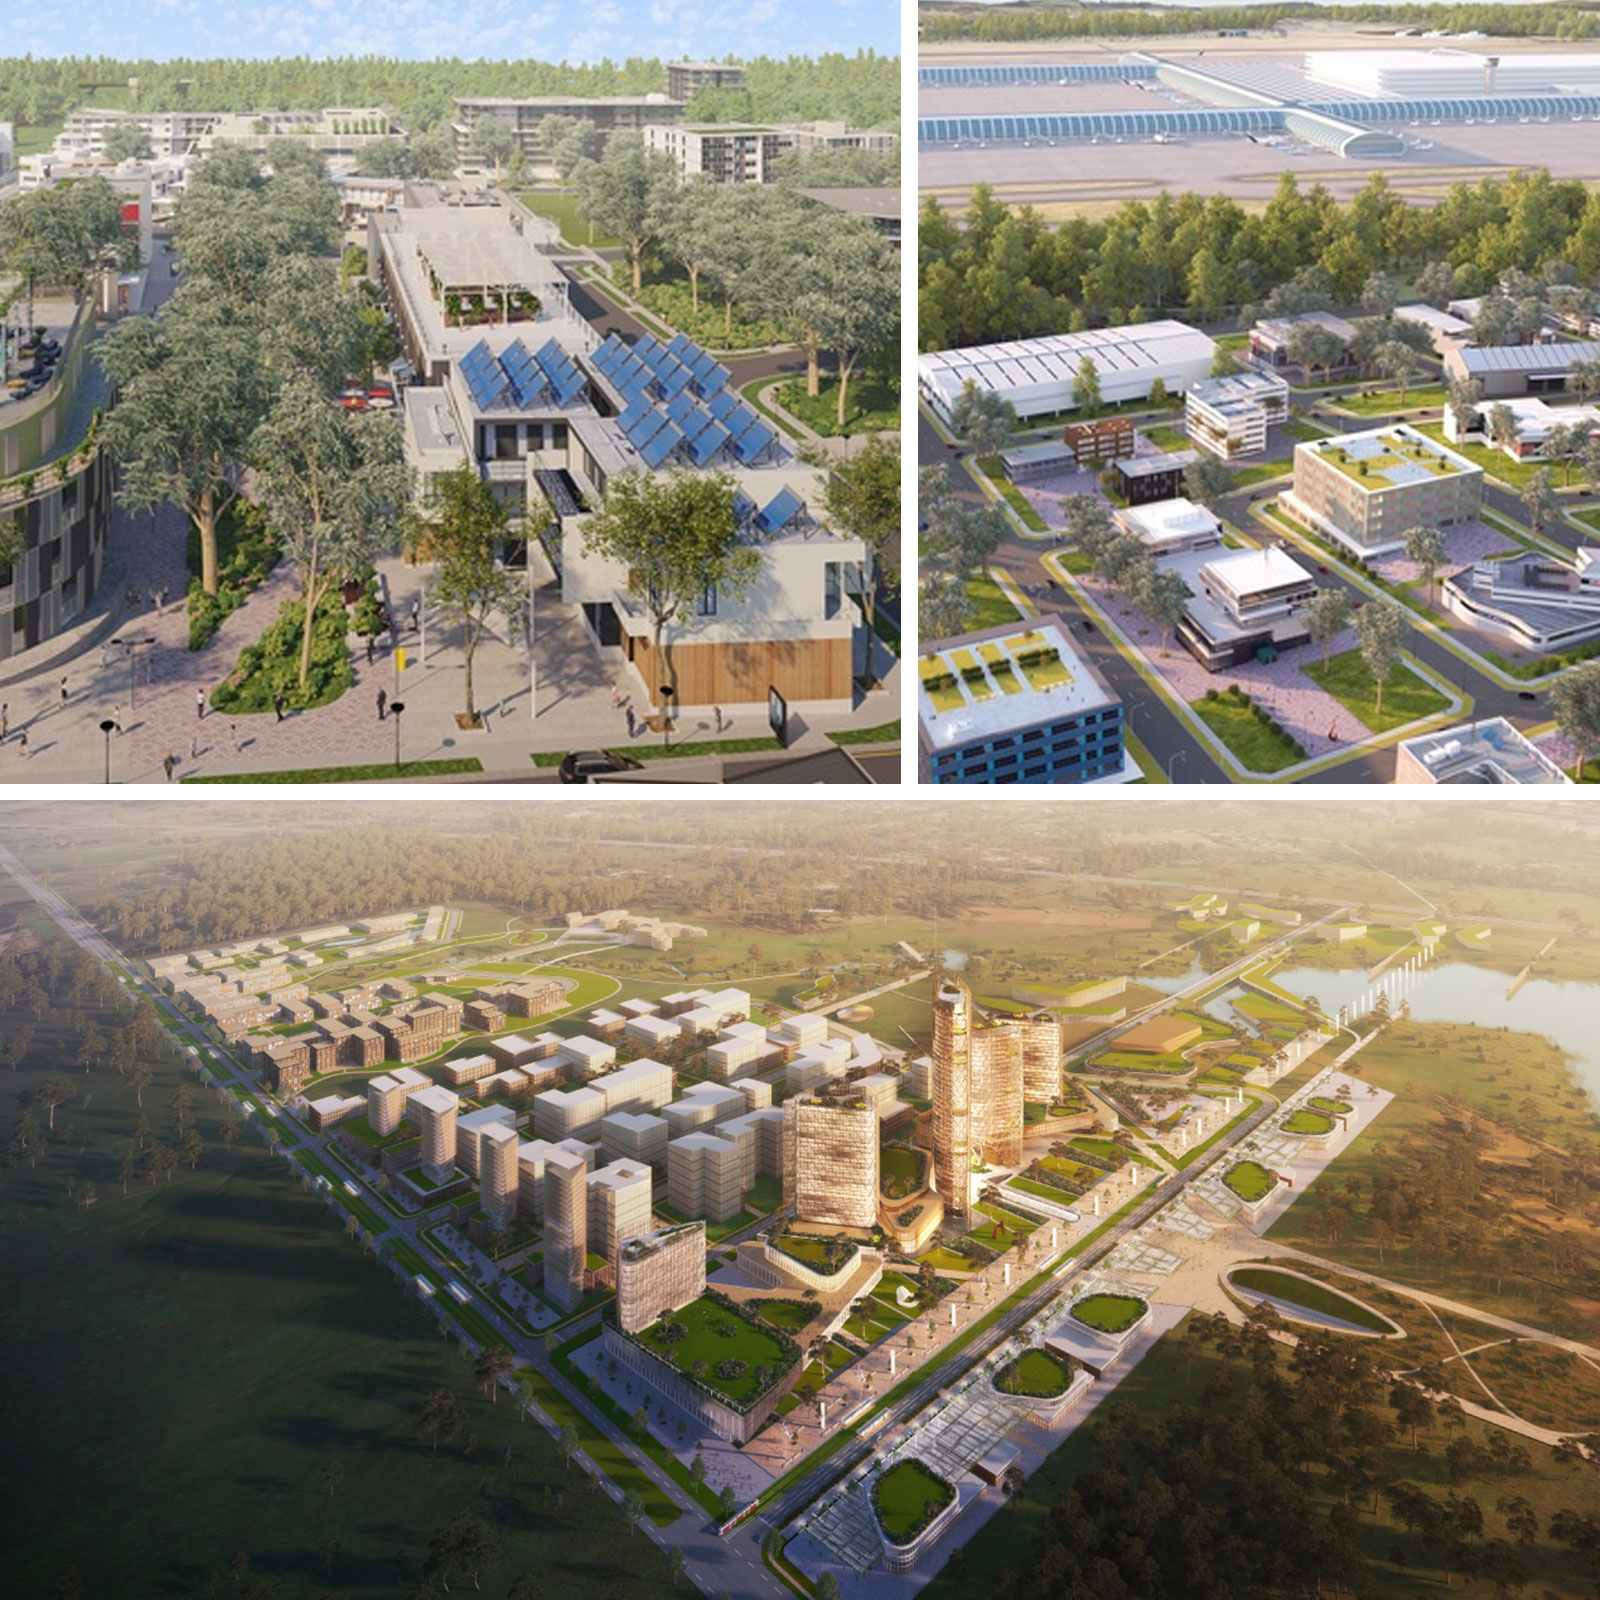 An indicative design for the town centre of the aerotropolis.